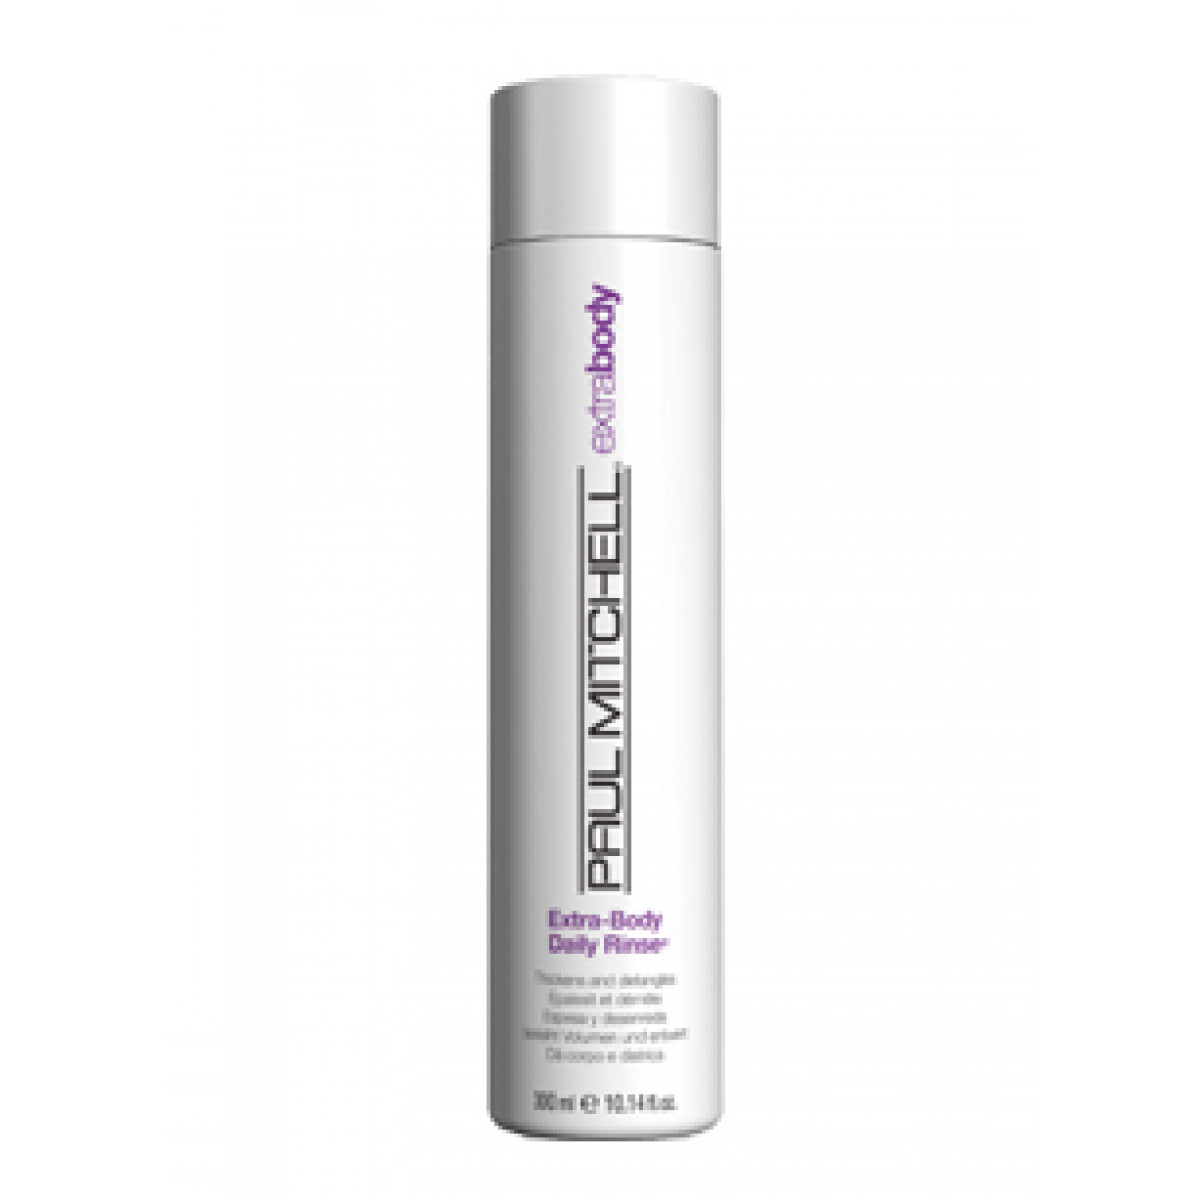 Condicionador Extra-Body Daily Rinse Paul Mitchell 300ml